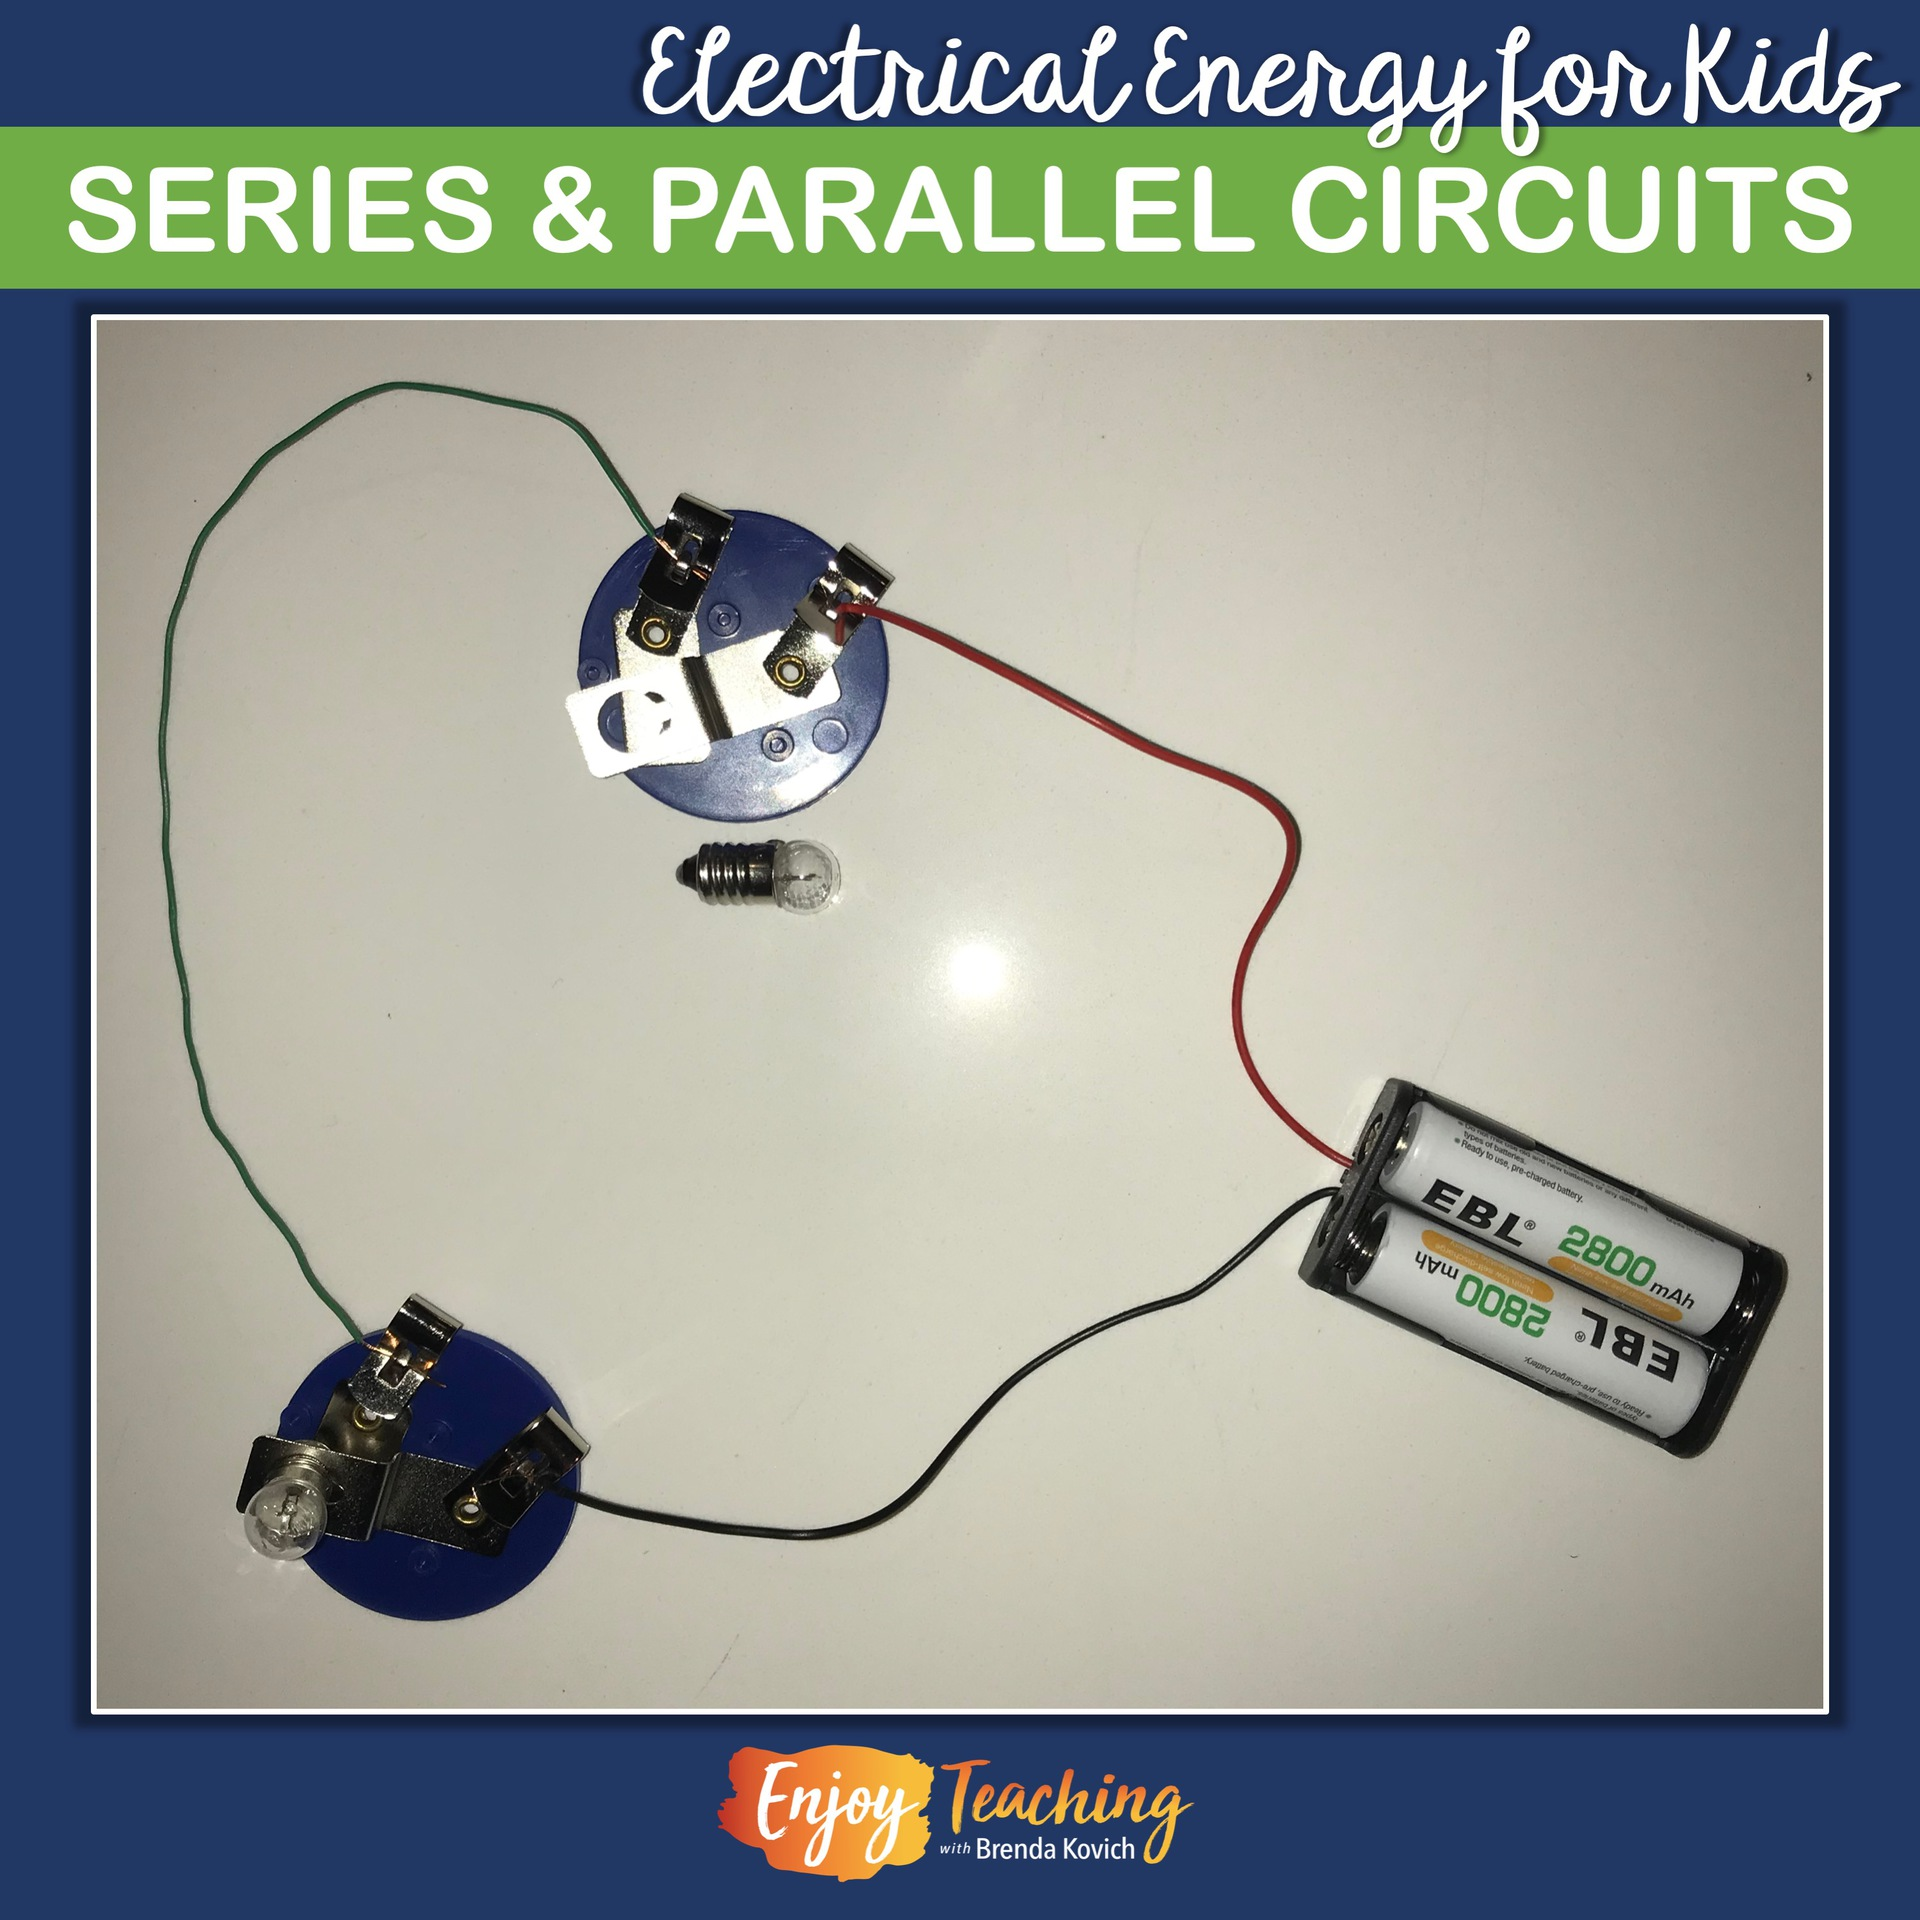 Teaching Series And Parallel Circuits Activities For Kids